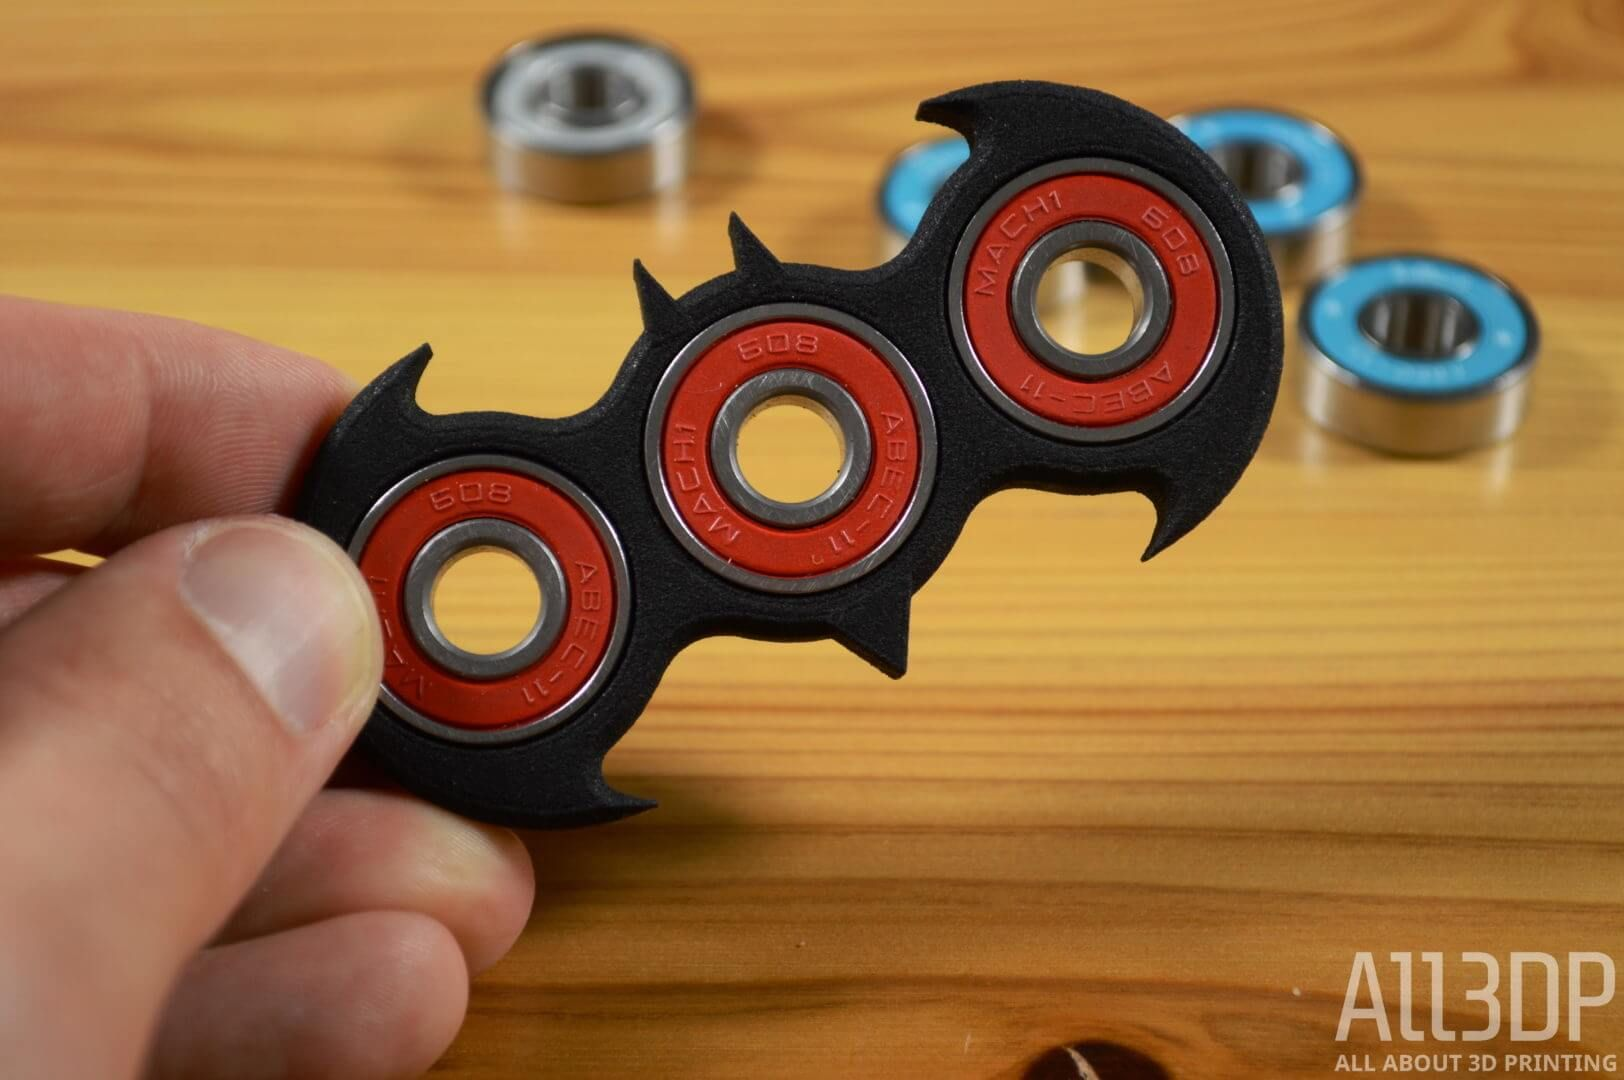 buy from fidget spinners pinterest. Black Bedroom Furniture Sets. Home Design Ideas